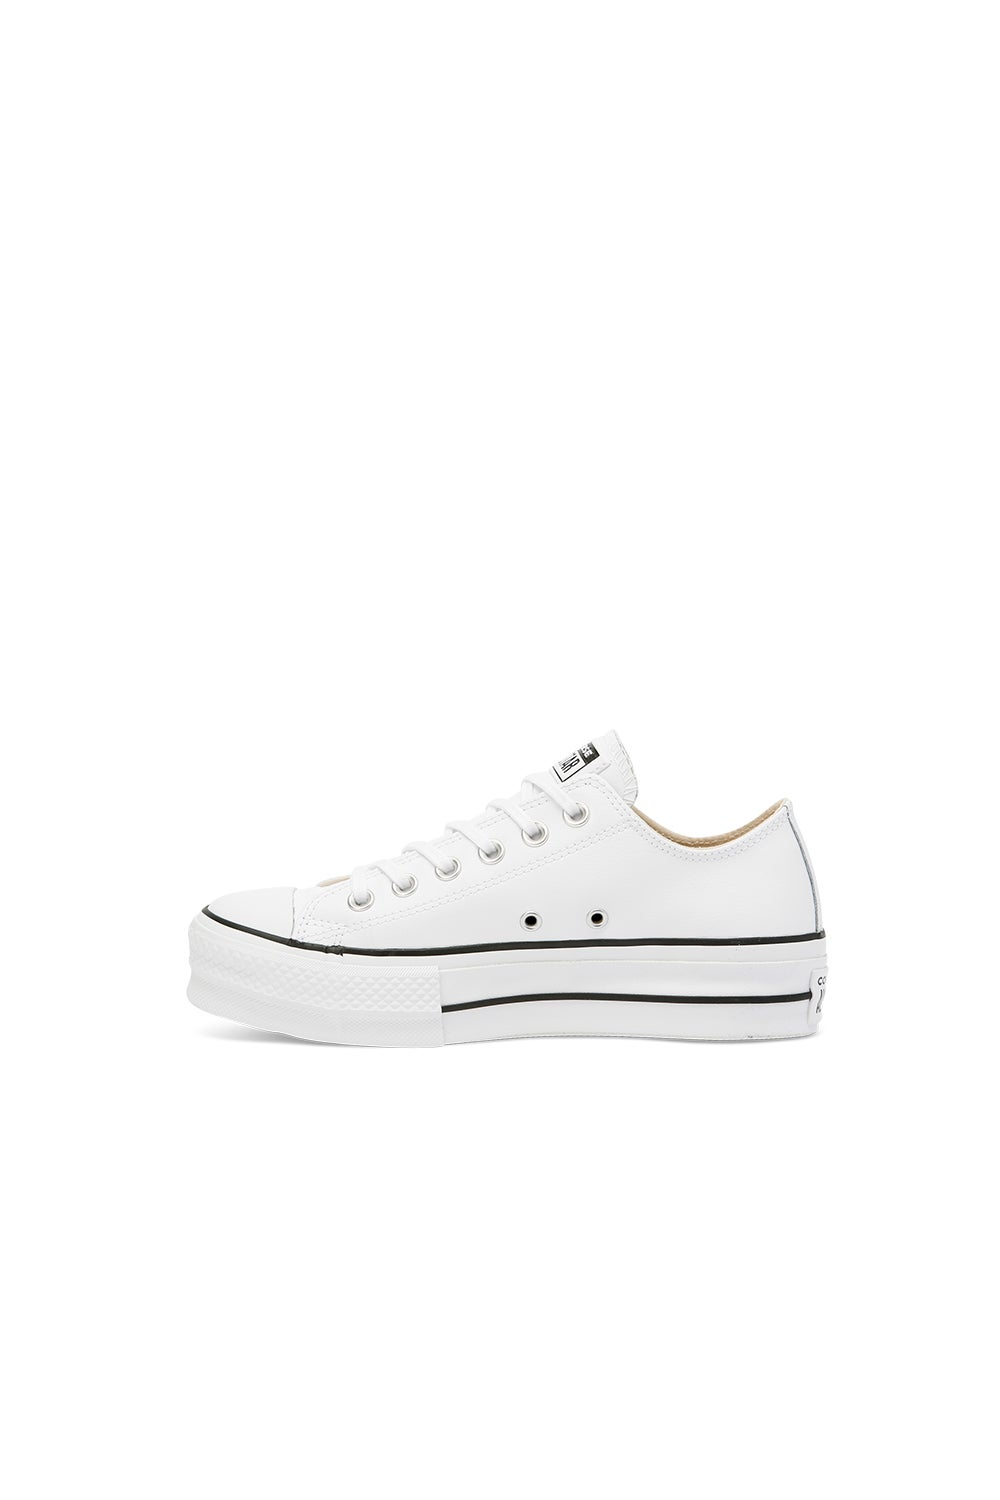 Converse Chuck Taylor All Star Lift Leather White